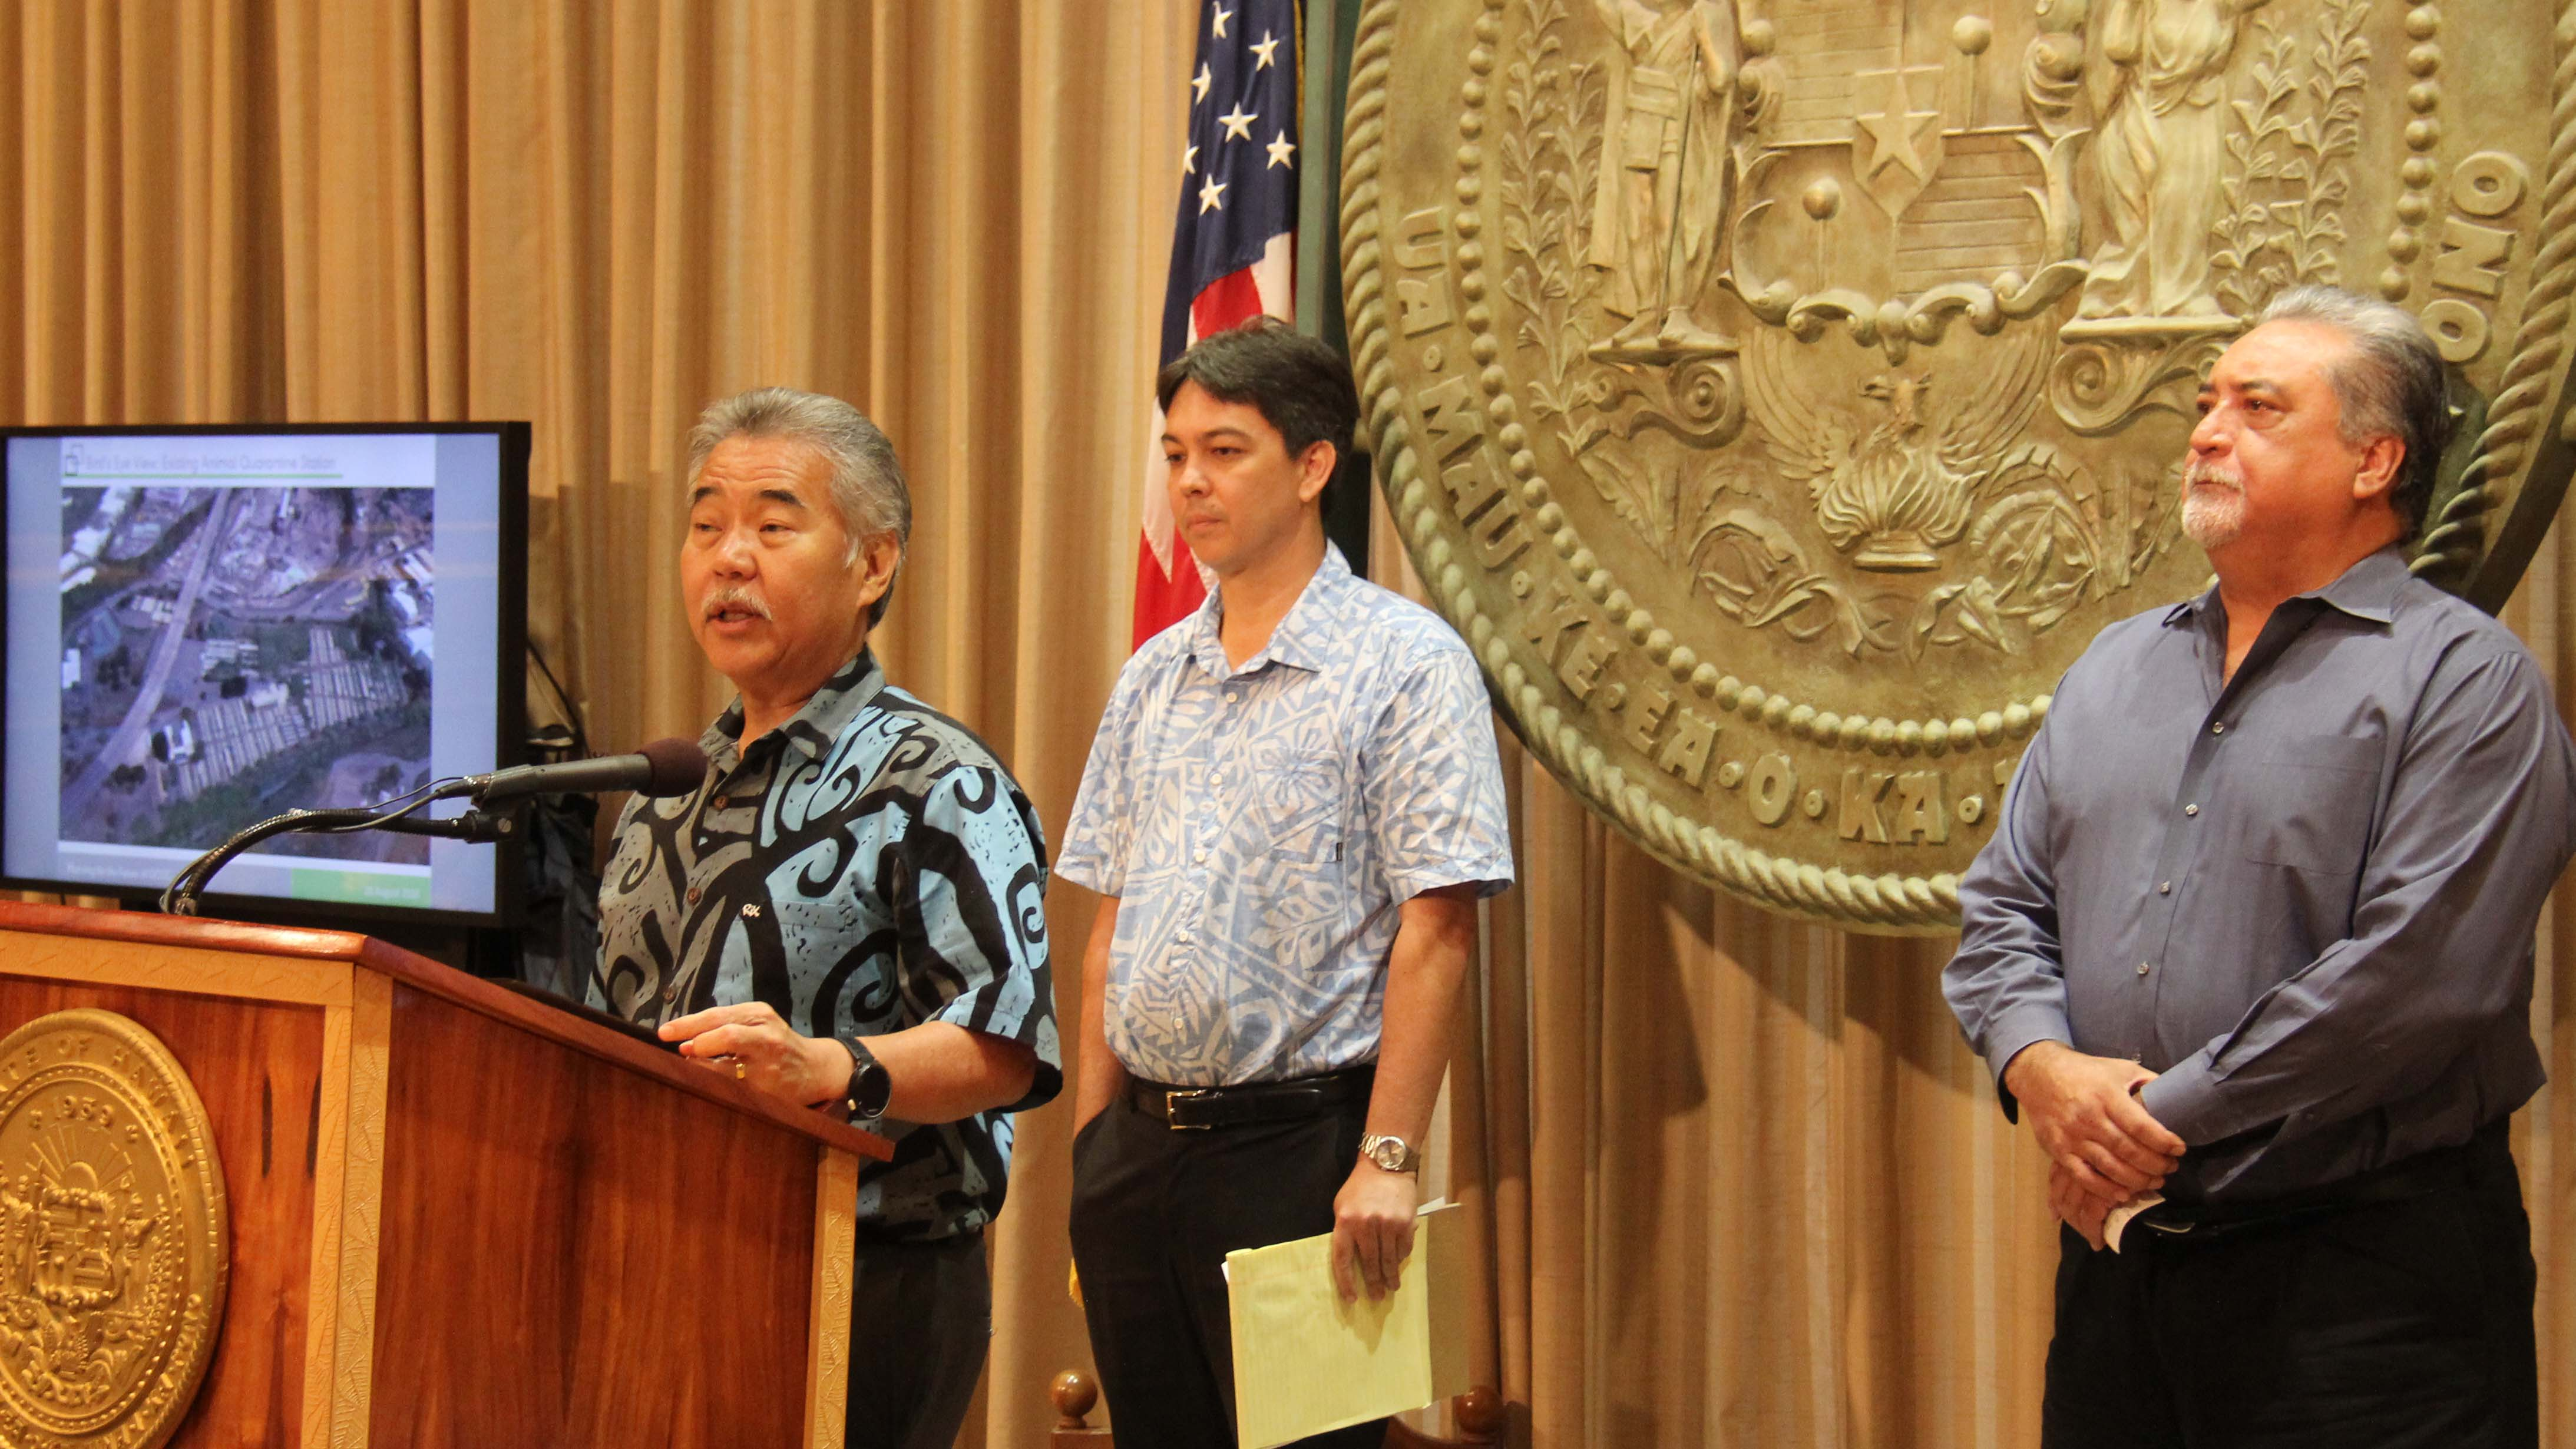 Gov. Ige describes the need to replace OCCC at a press conference with Rod Becker (left), director of the Department of Accounting and General Services and Nolan Espinda, director of the Department of Public Safety.